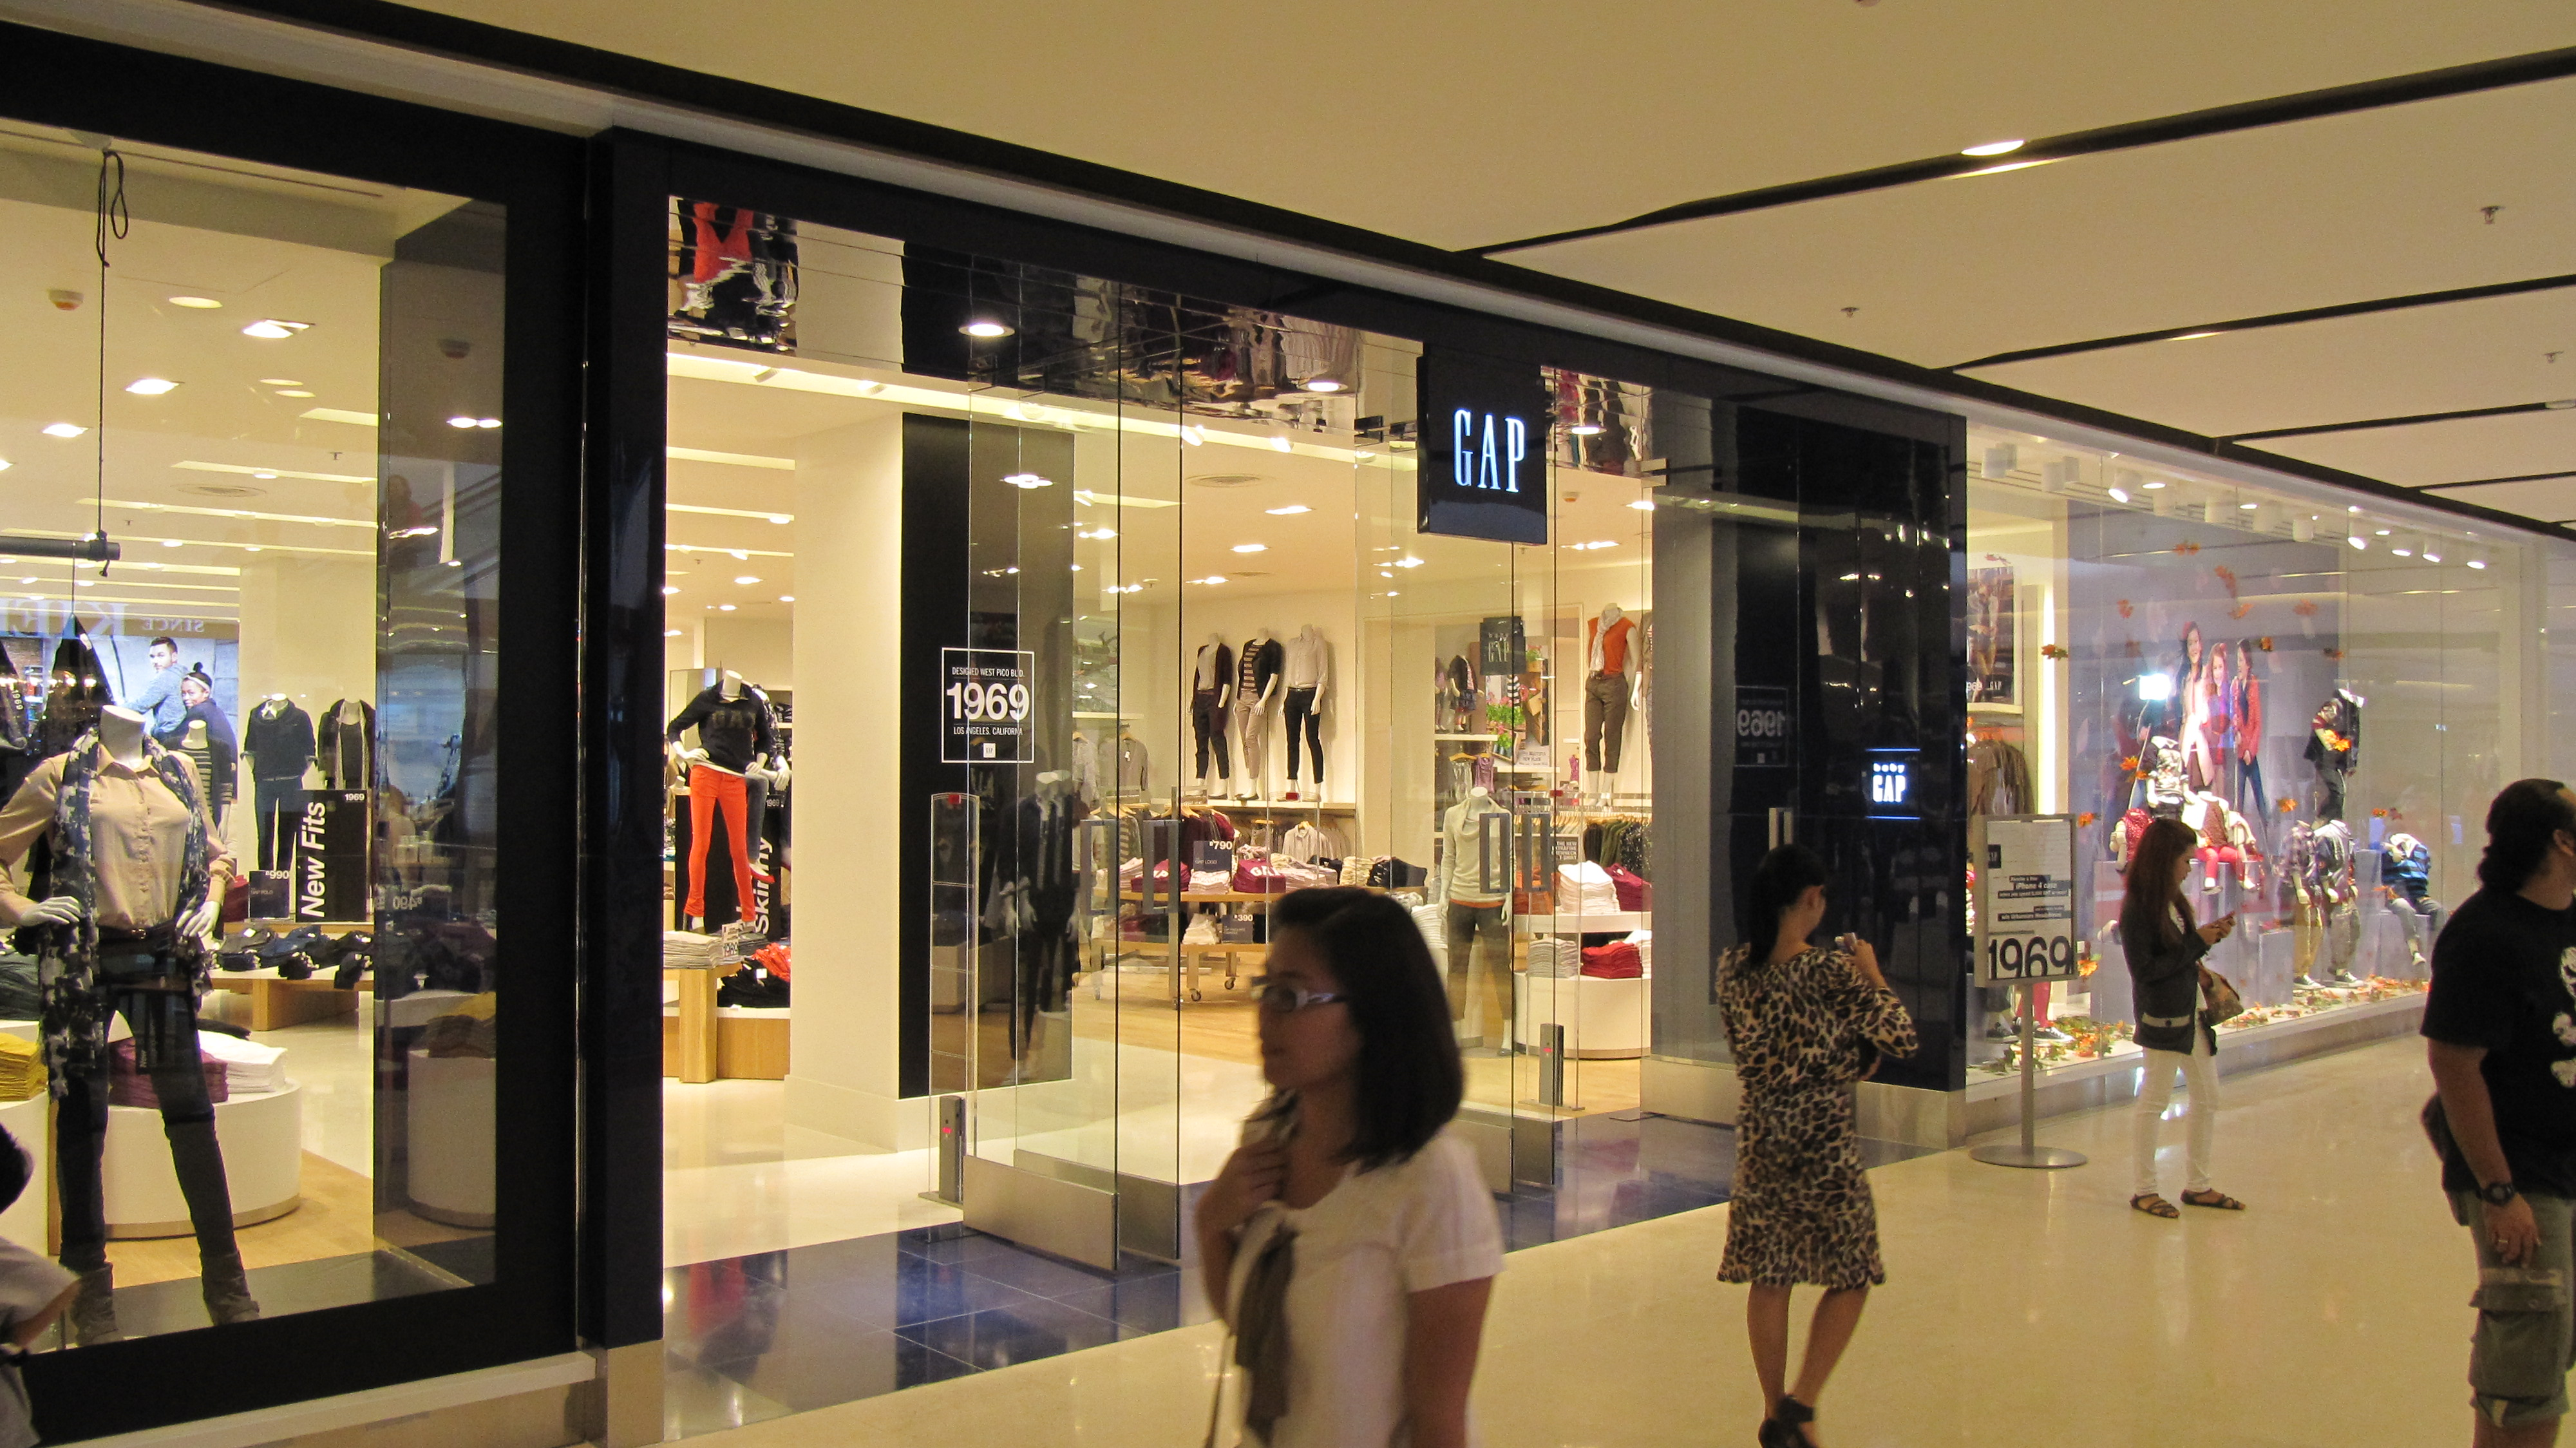 Store Shopping Outlet Gap Online